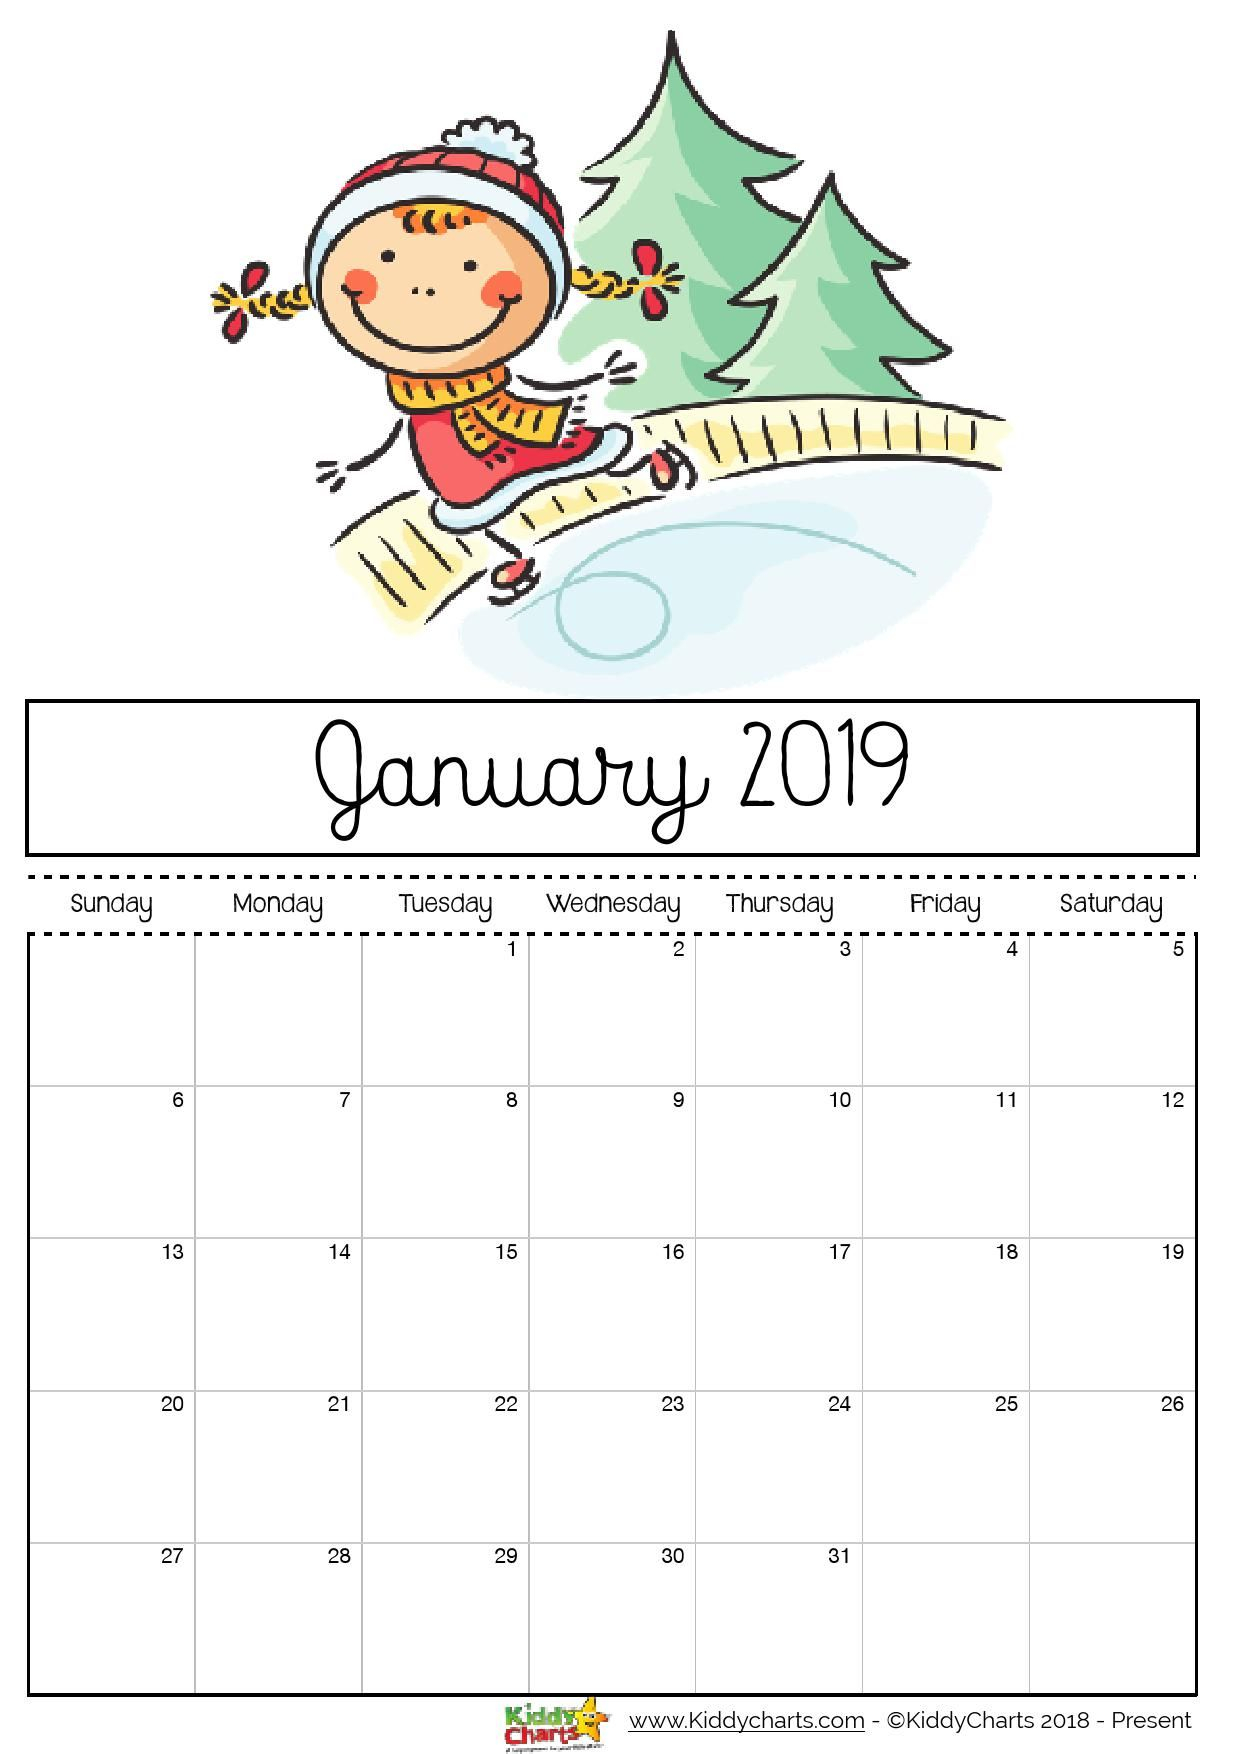 Free Printable 2019 Calendar - Print Yours Here | Planner | Print for Blank Calendar Months For Year 2019-2020 Girly